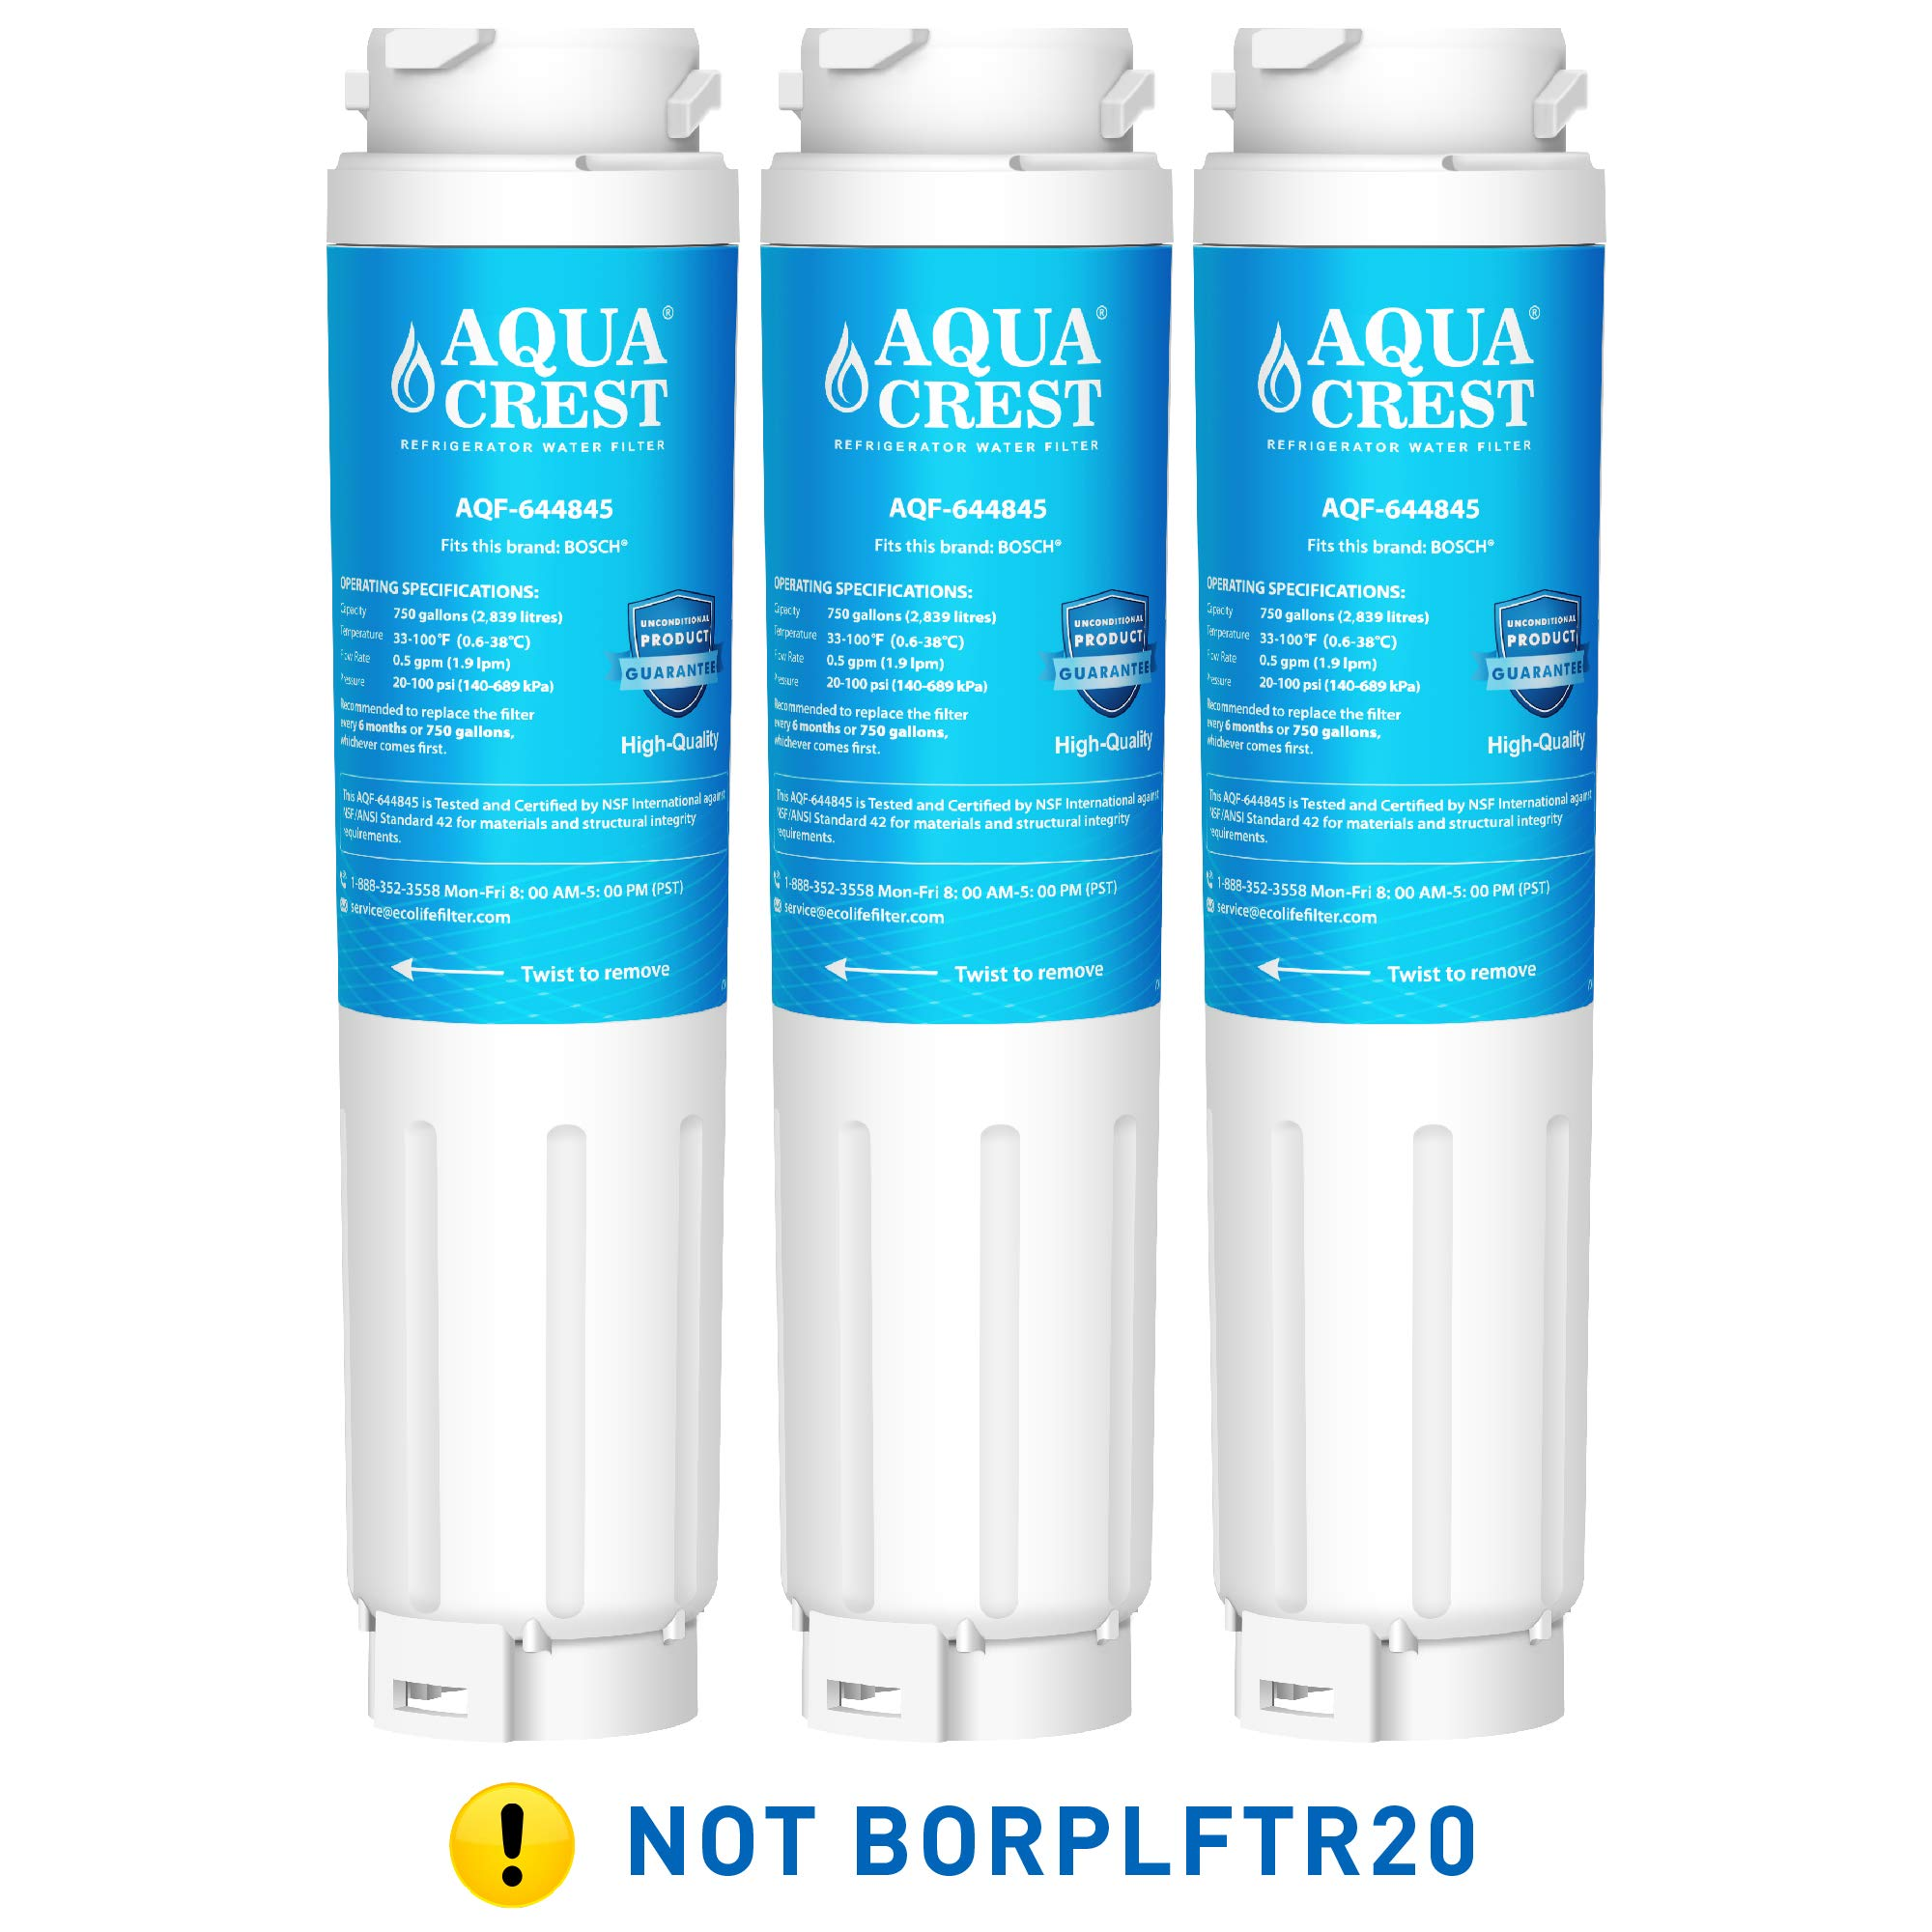 AQUACREST 644845 Refrigerator Water Filter, Compatible with Bosch Ultra Clarity 644845, 9000194412, 9000077104, Miele KWF1000, Haier 0060820860, 0060218743 (Pack of 3) by AQUA CREST